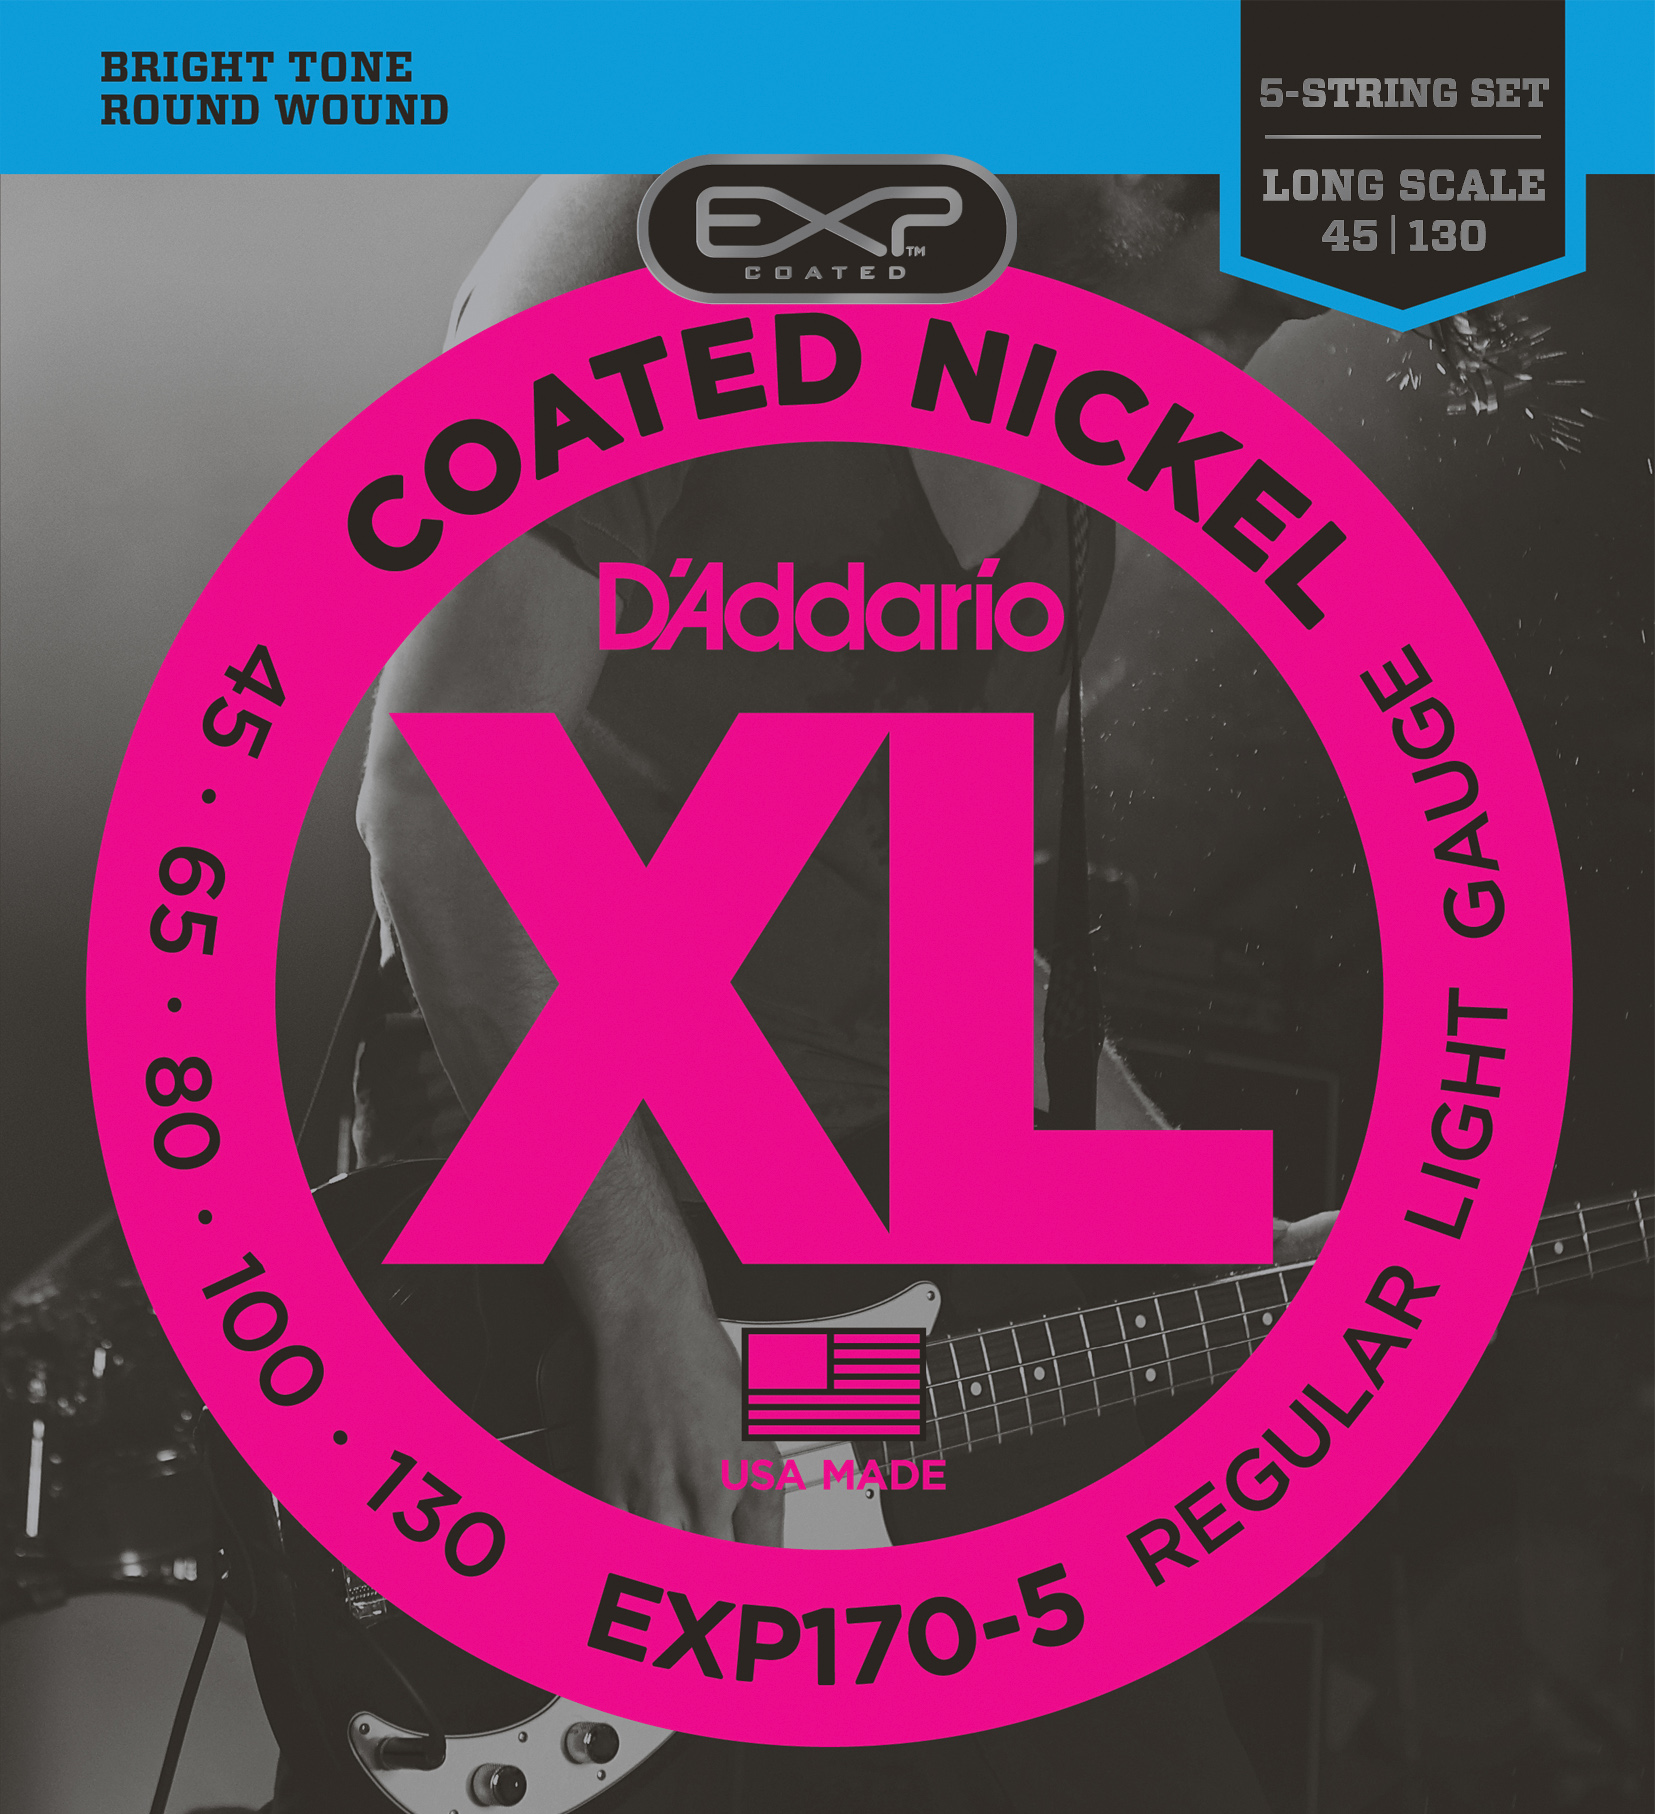 D'Addario EXP170-5 Coated 5-String Bass Guitar Strings, Light, 45-130, Long Scal...